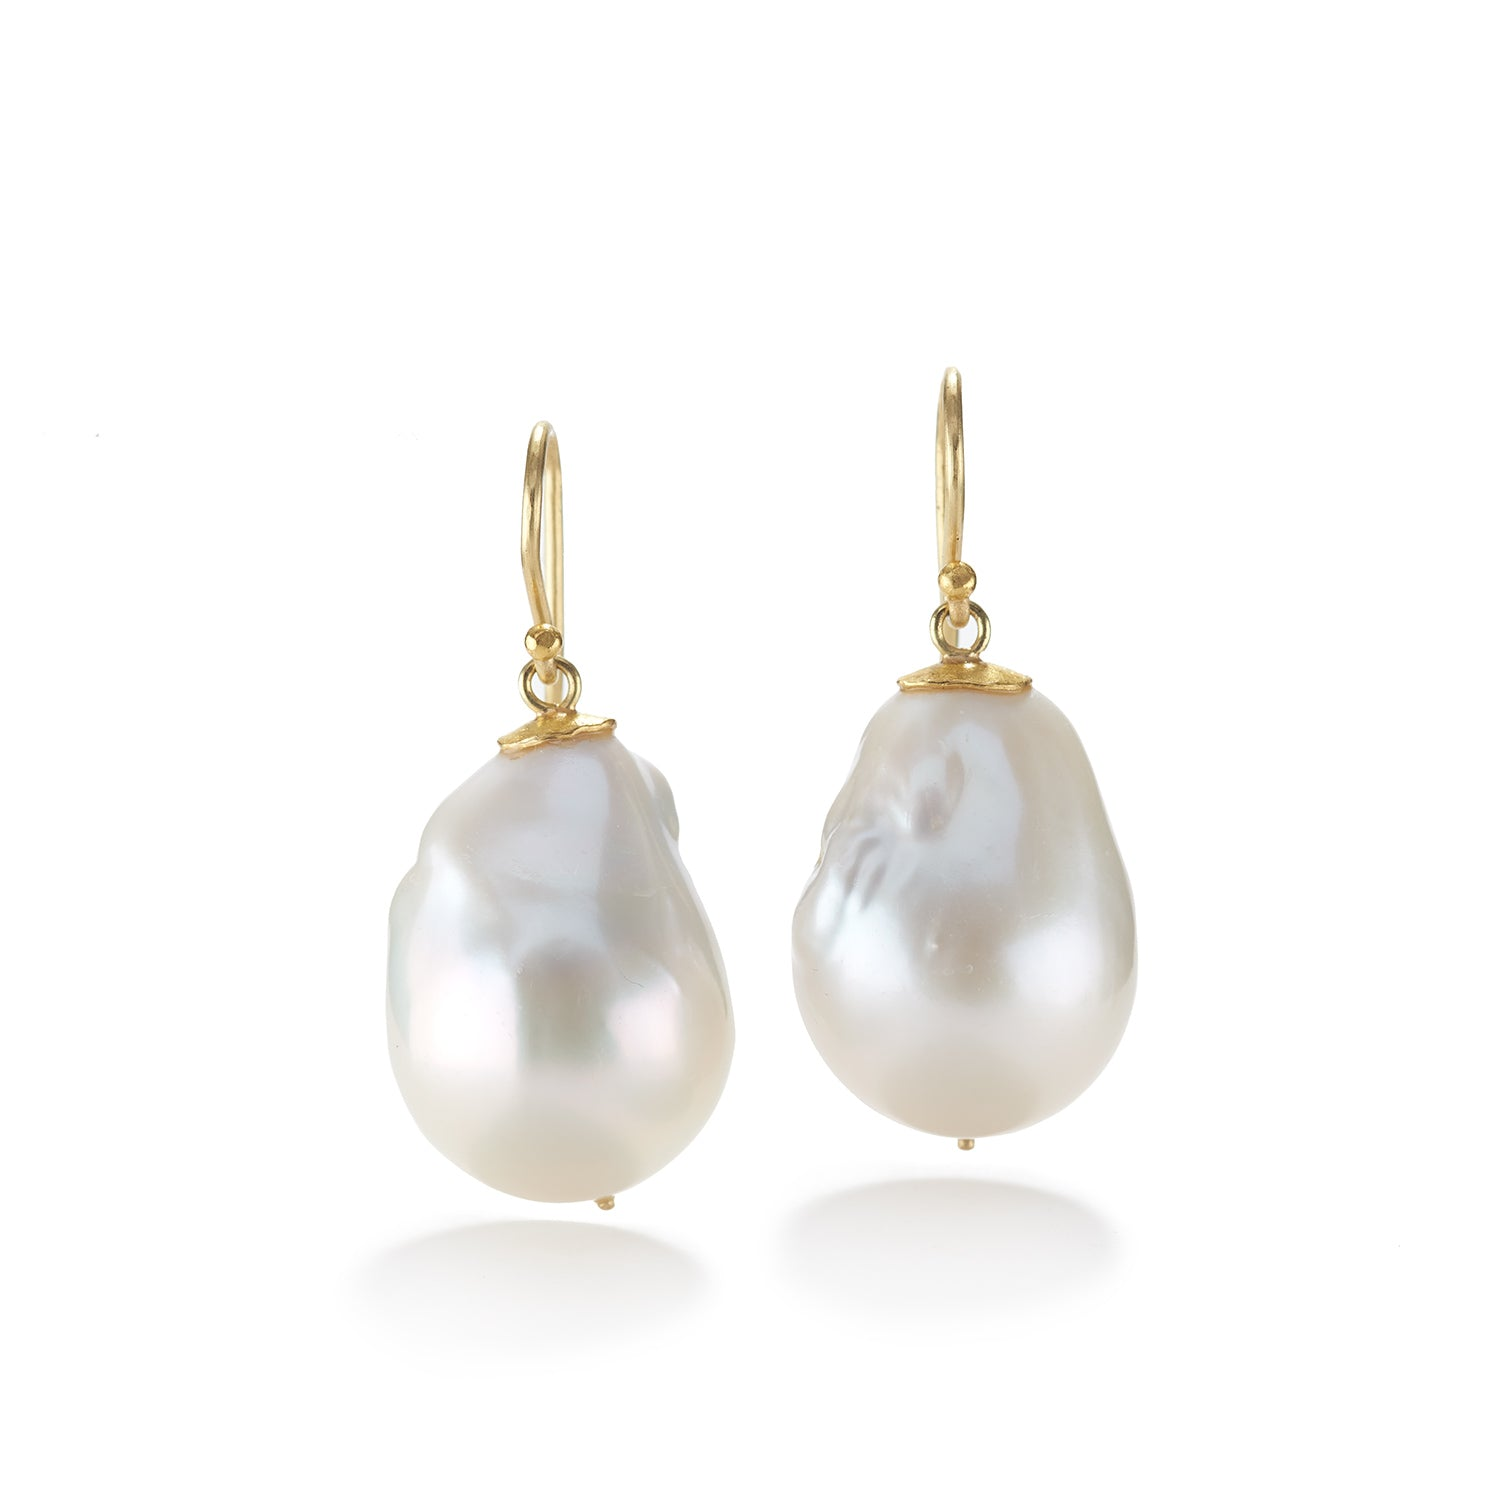 Large White Baroque Pearl Earrings